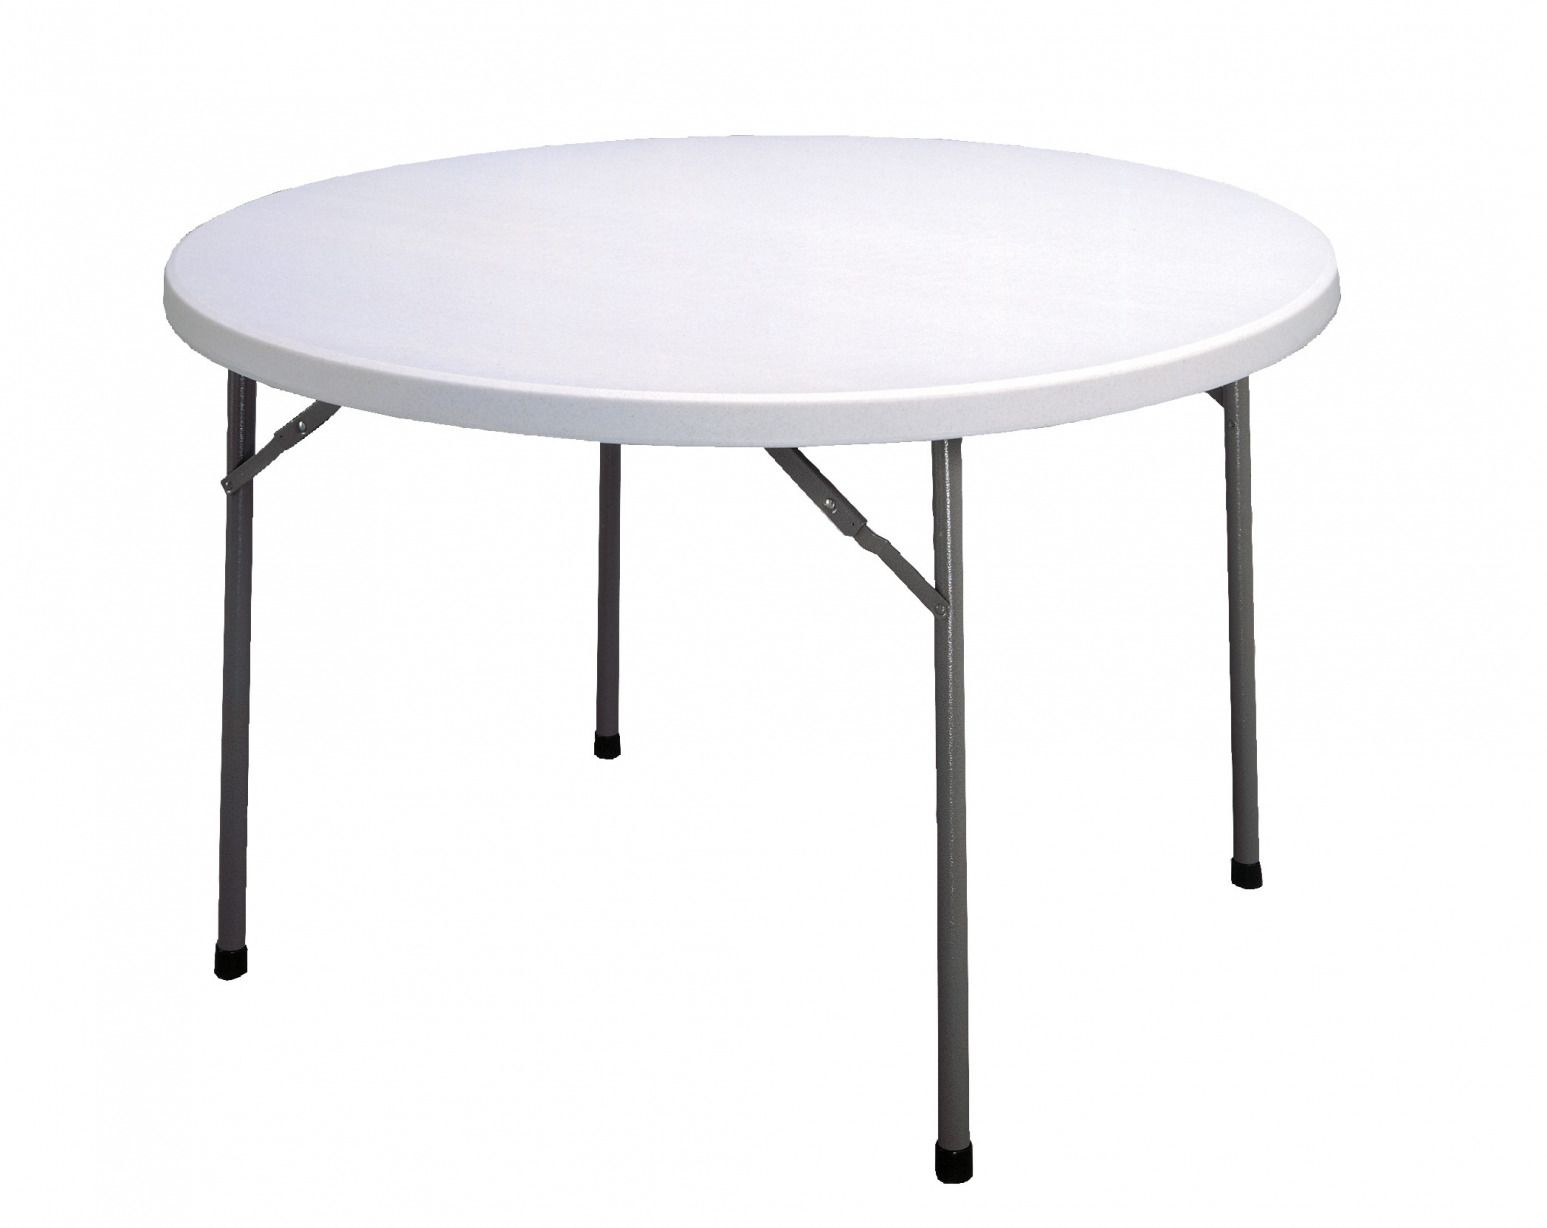 100 48 Round Folding Table Costco Best Paint For Furniture